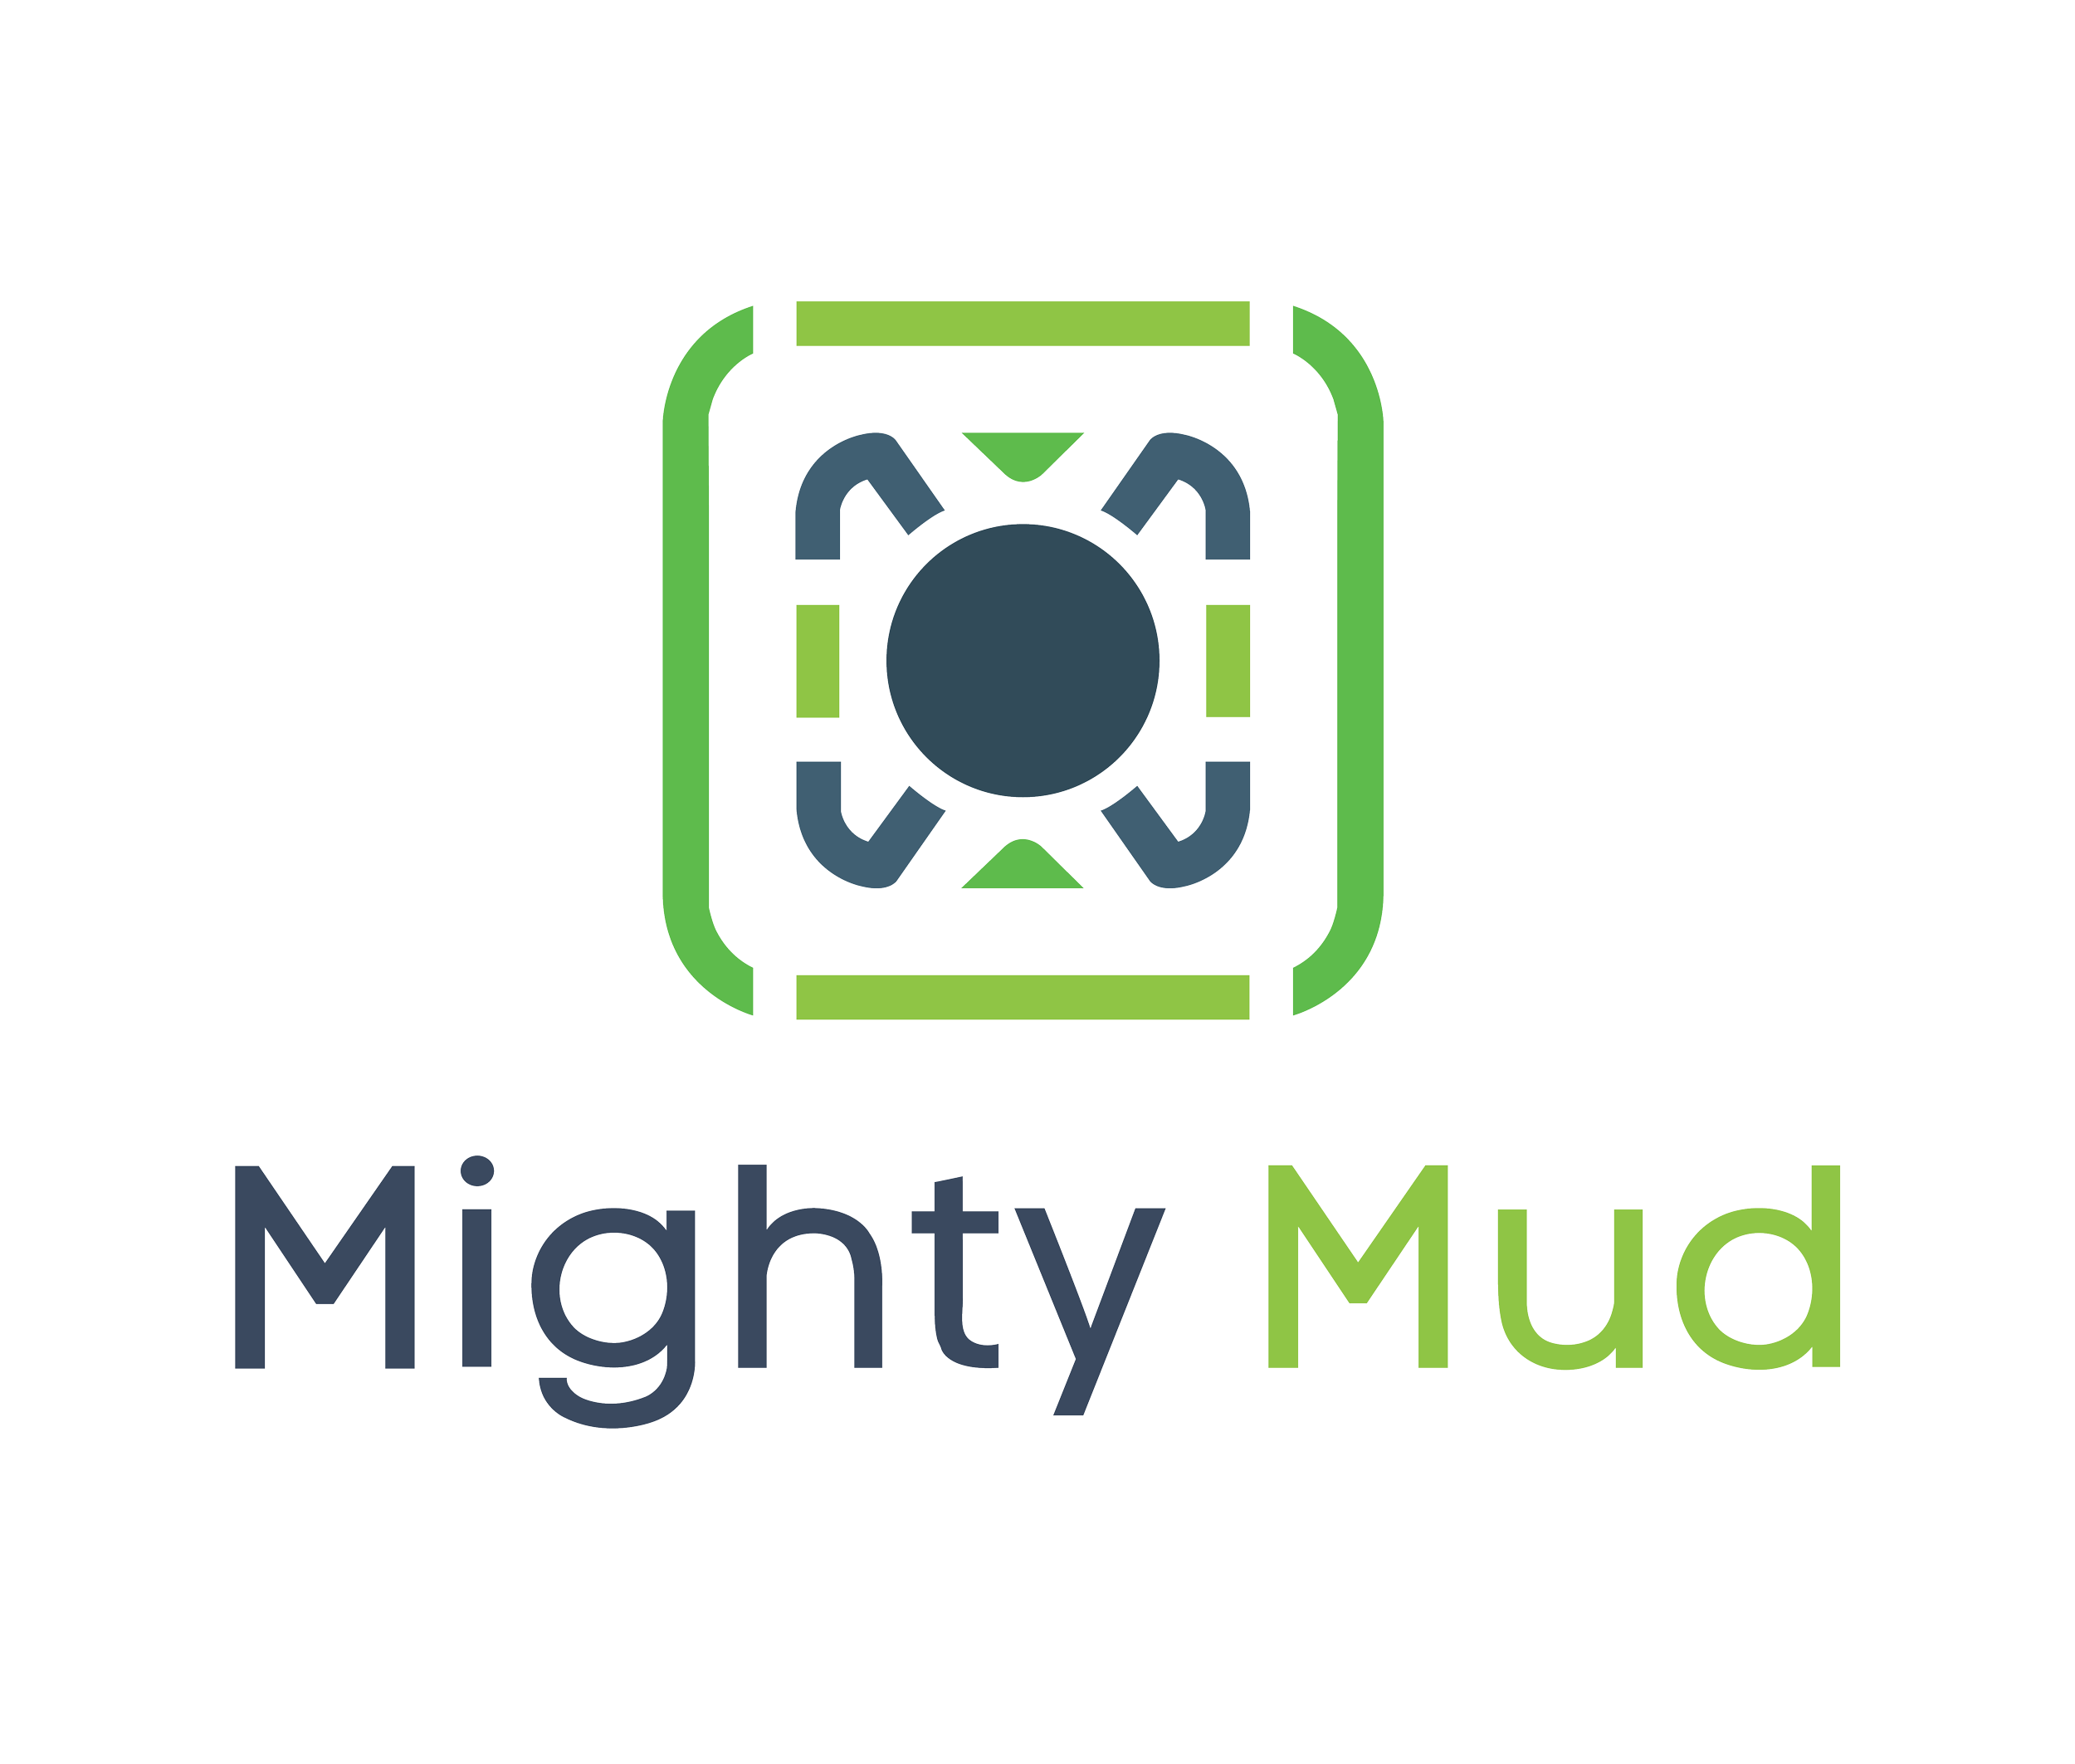 Mighty Mud